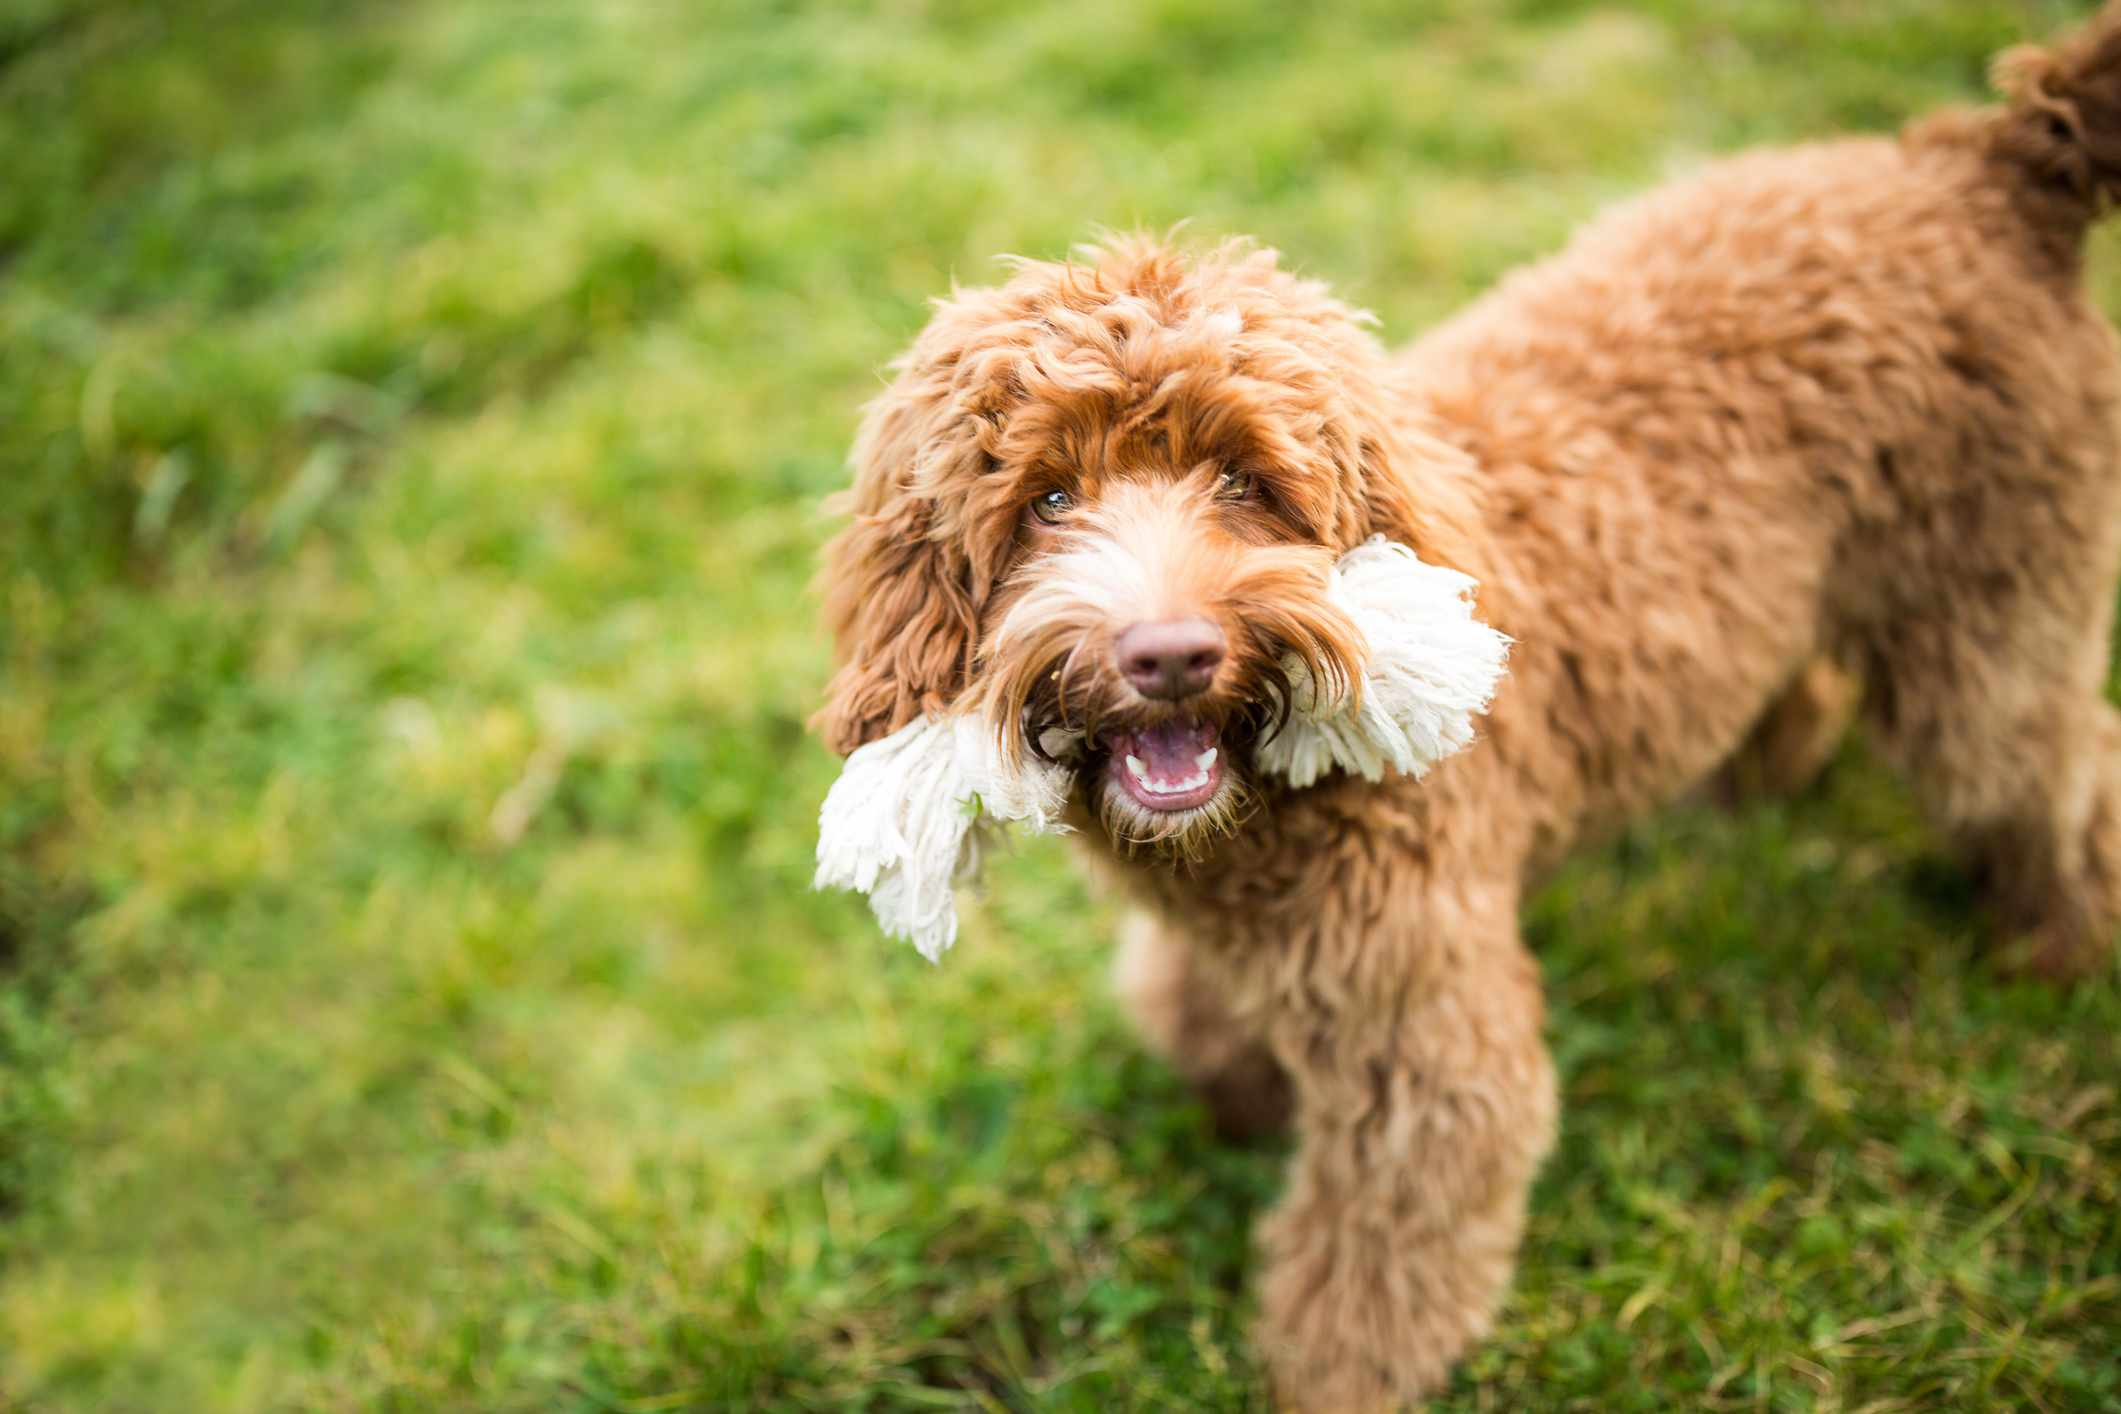 Playful Labradoodle Puppy with Toy